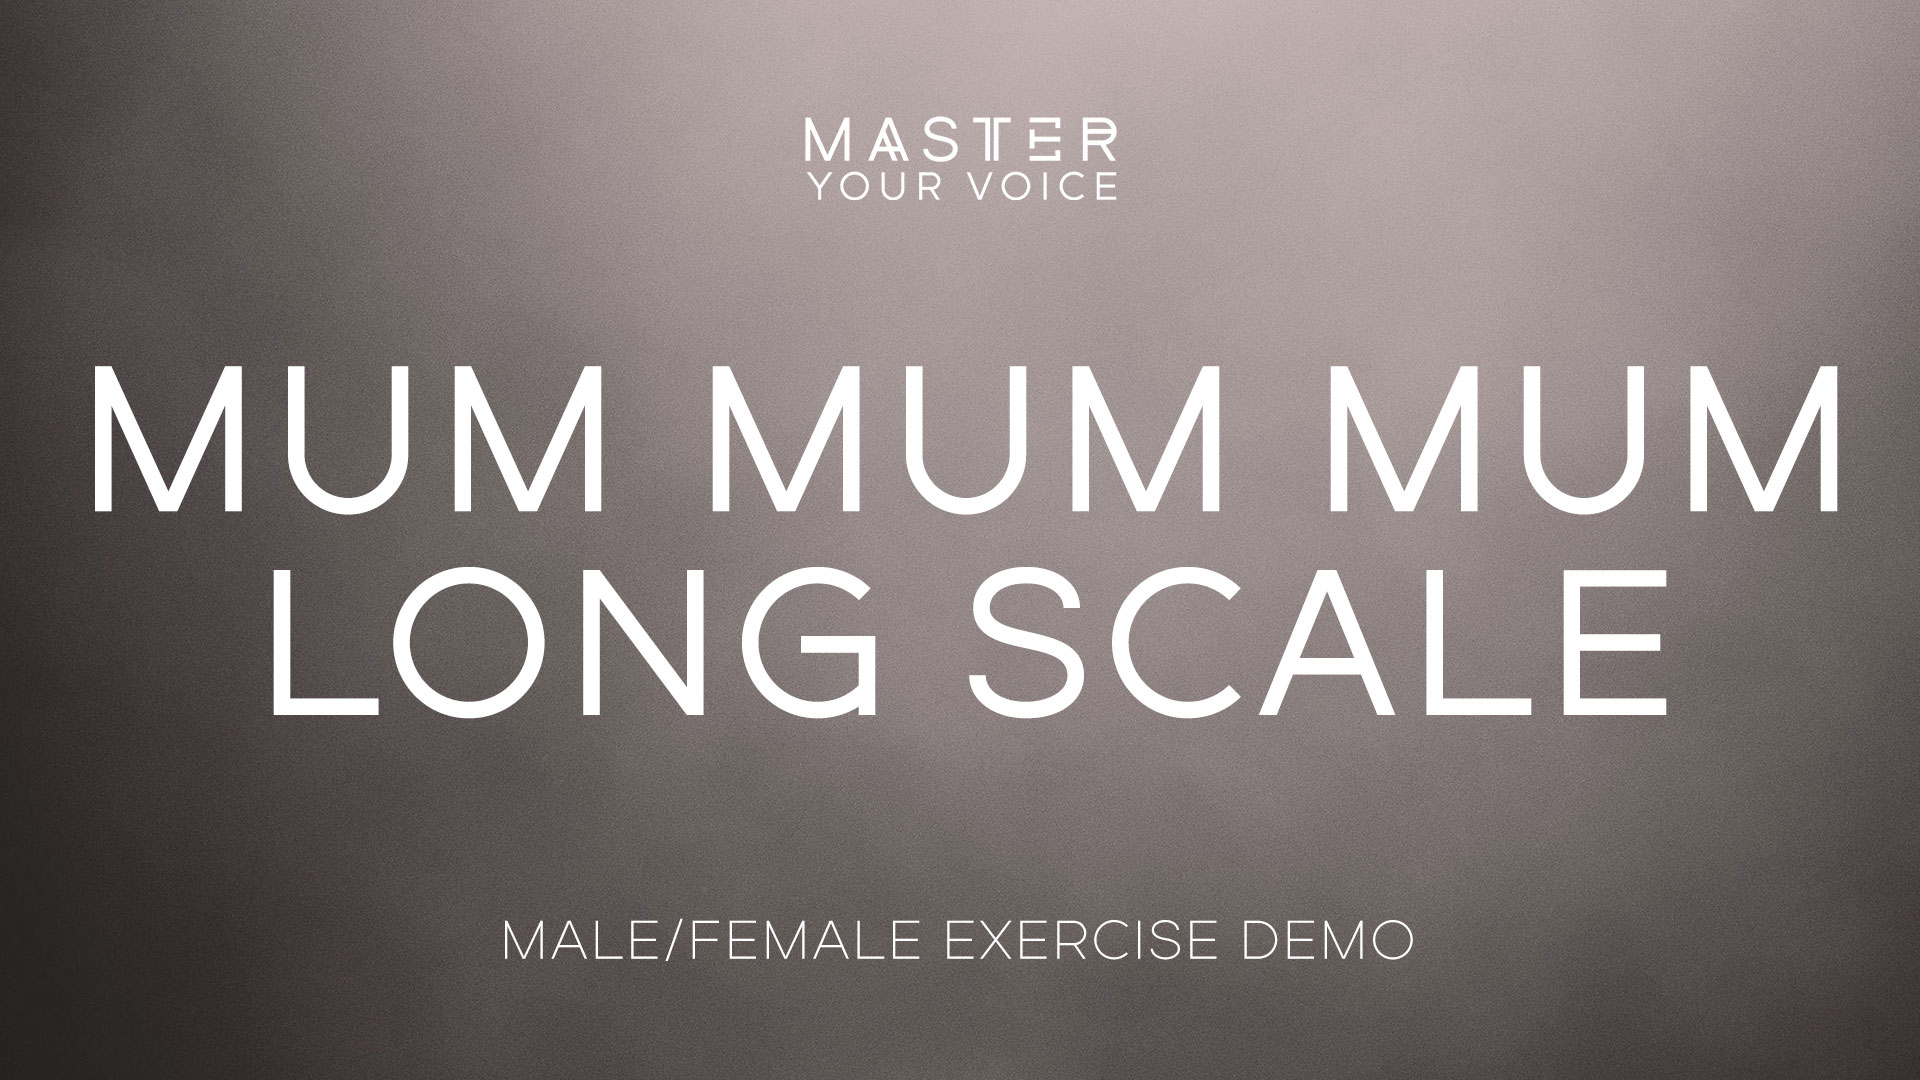 Mum Mum Mum Long Scale Exercise Demo